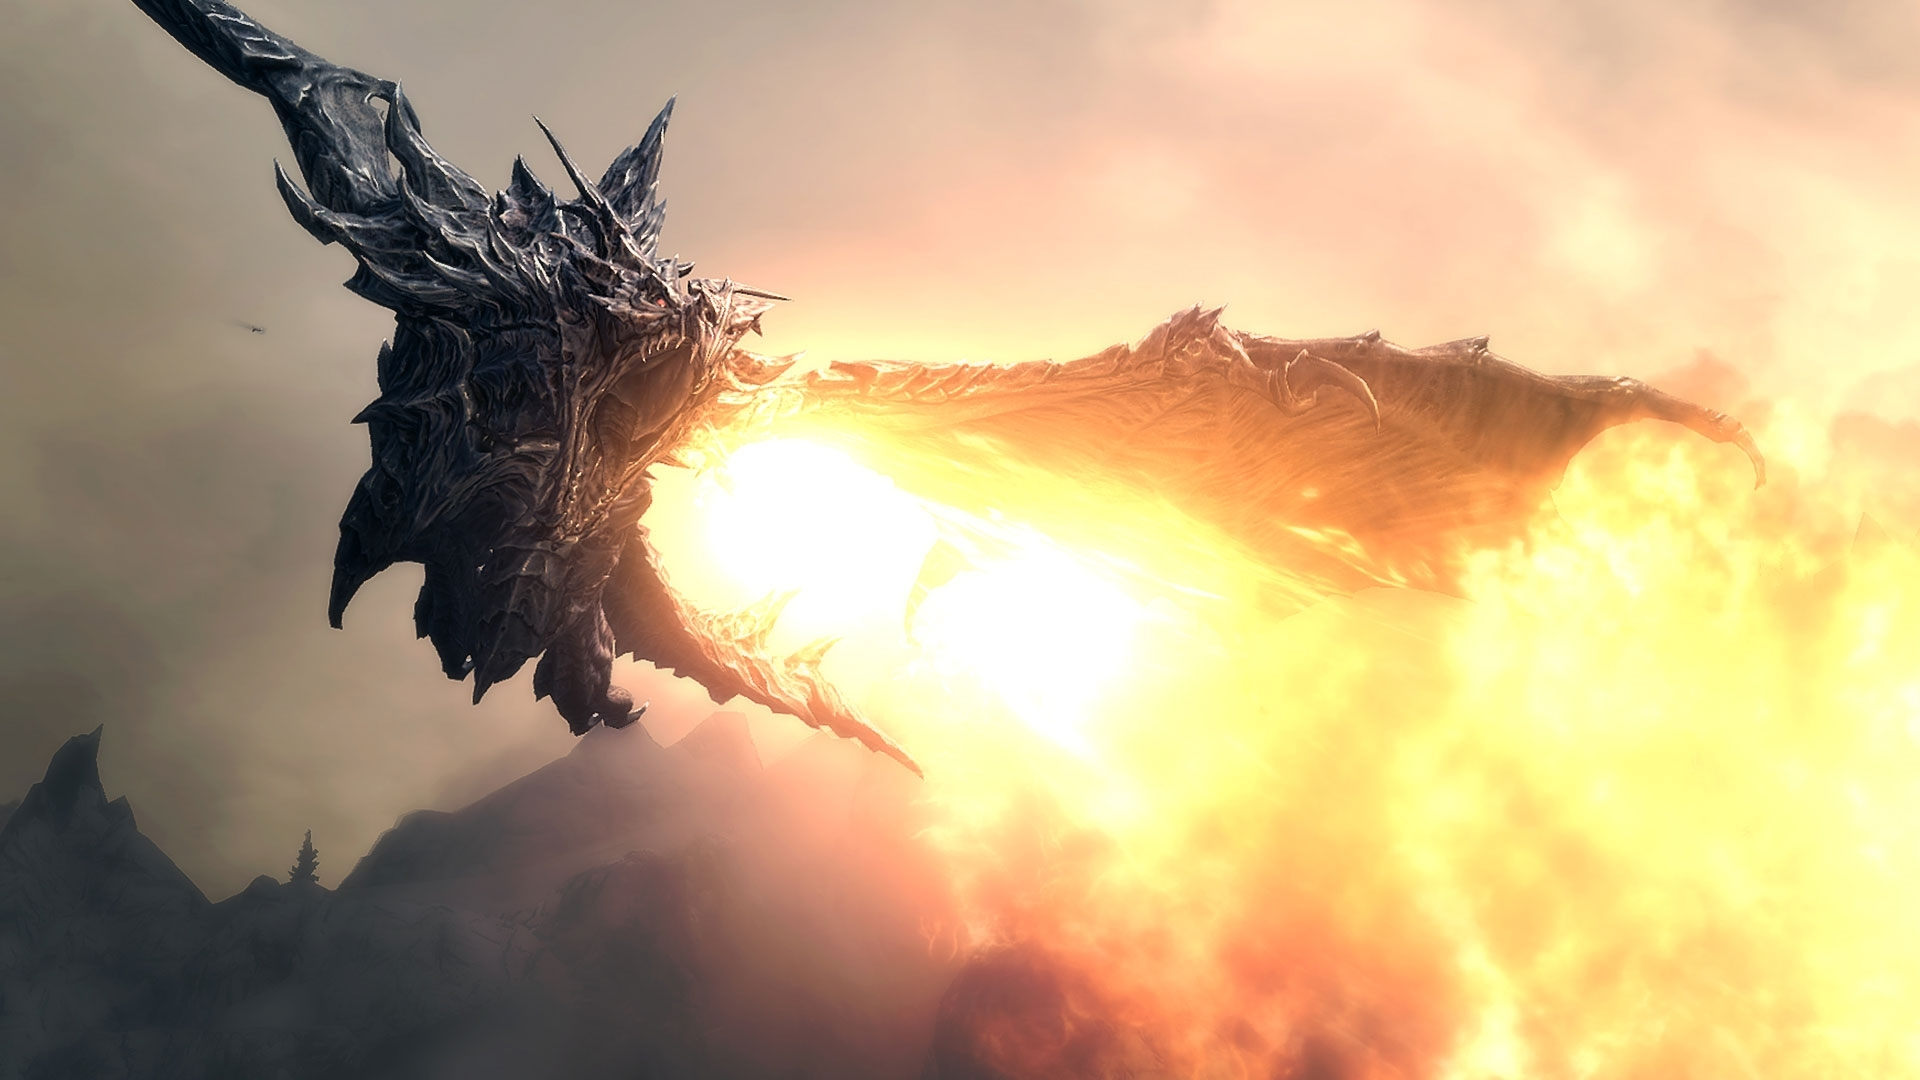 how to get skyrim for free on pc 2018